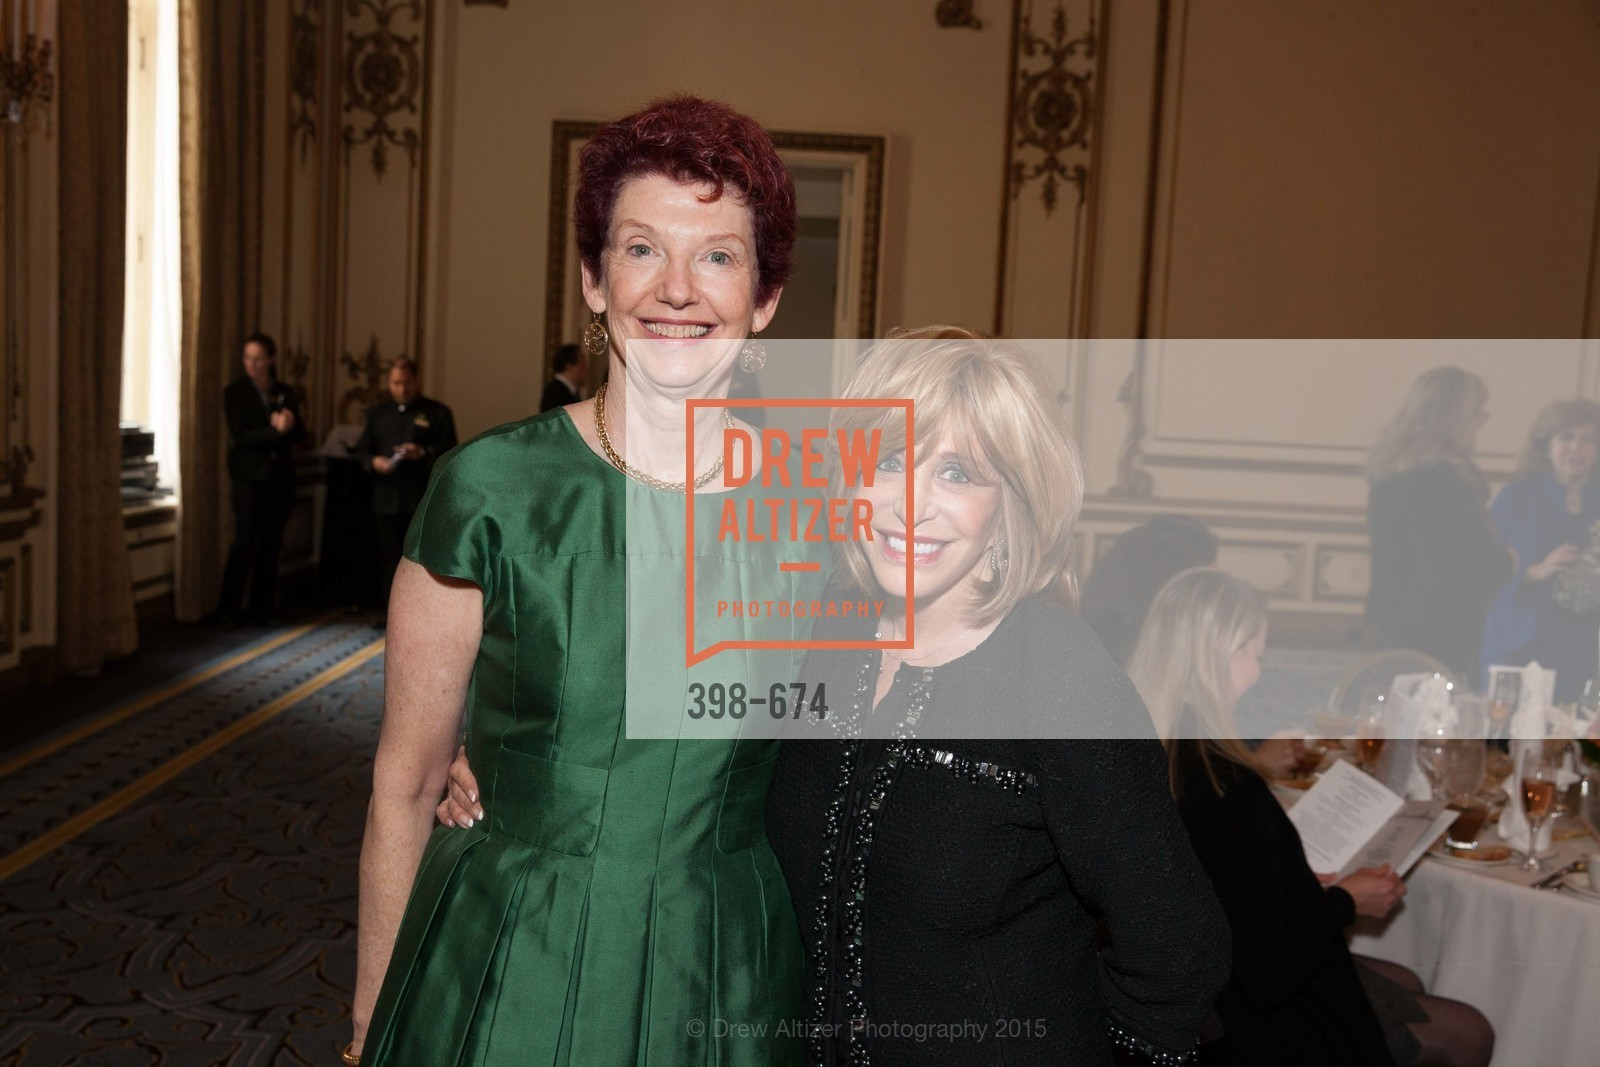 Susie Hoganson, Esty Lawrie, Junior League of San Francisco's WATCH Luncheon, Fairmont Hotel. 950 Mason Street, May 4th, 2015,Drew Altizer, Drew Altizer Photography, full-service agency, private events, San Francisco photographer, photographer california